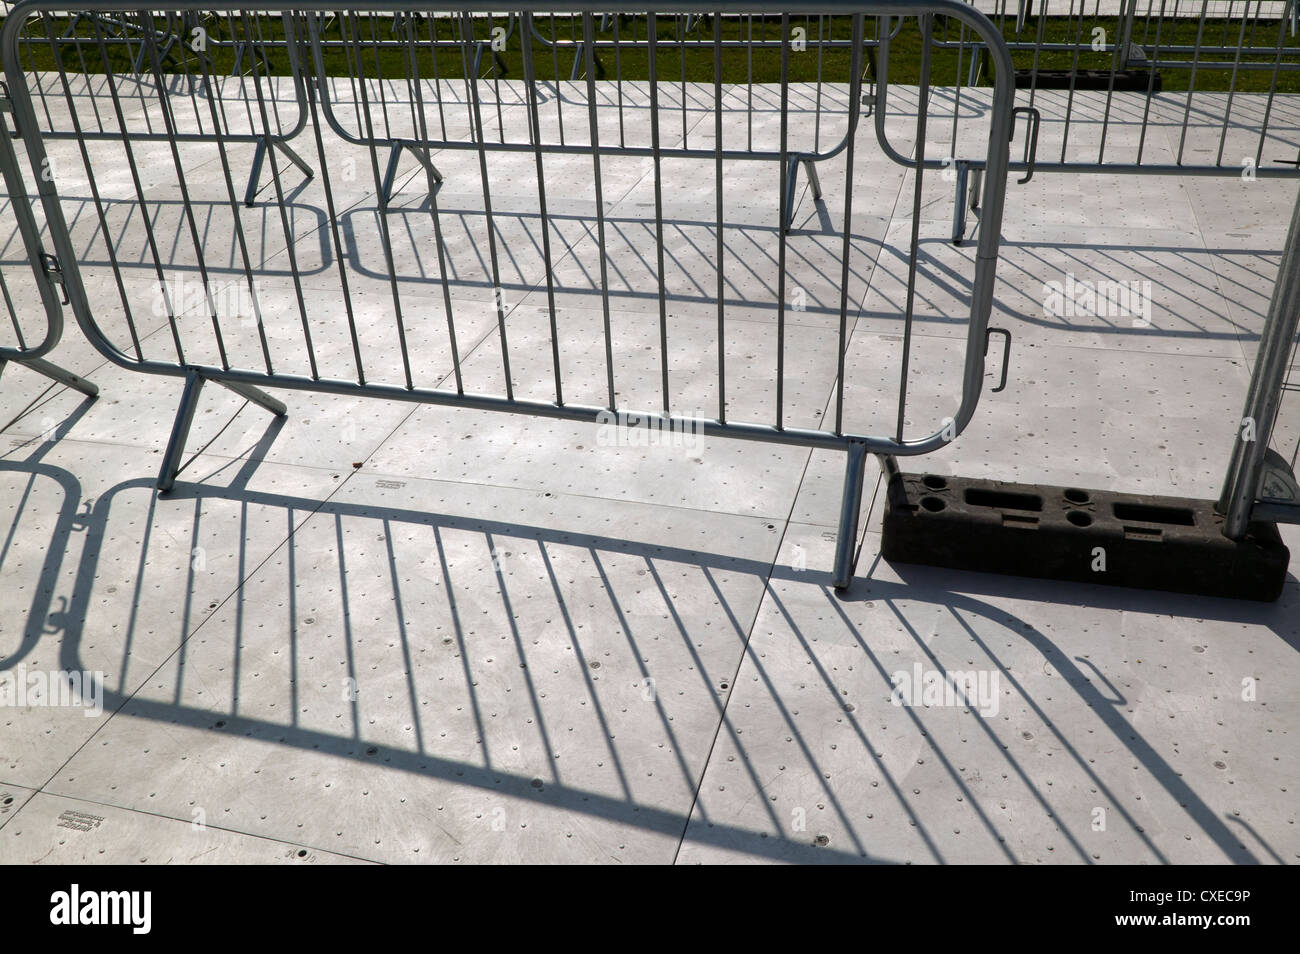 Temporary flooring and railings on the approach to a temporary pedestrian bridge over the A2, for the London 2012 - Stock Image